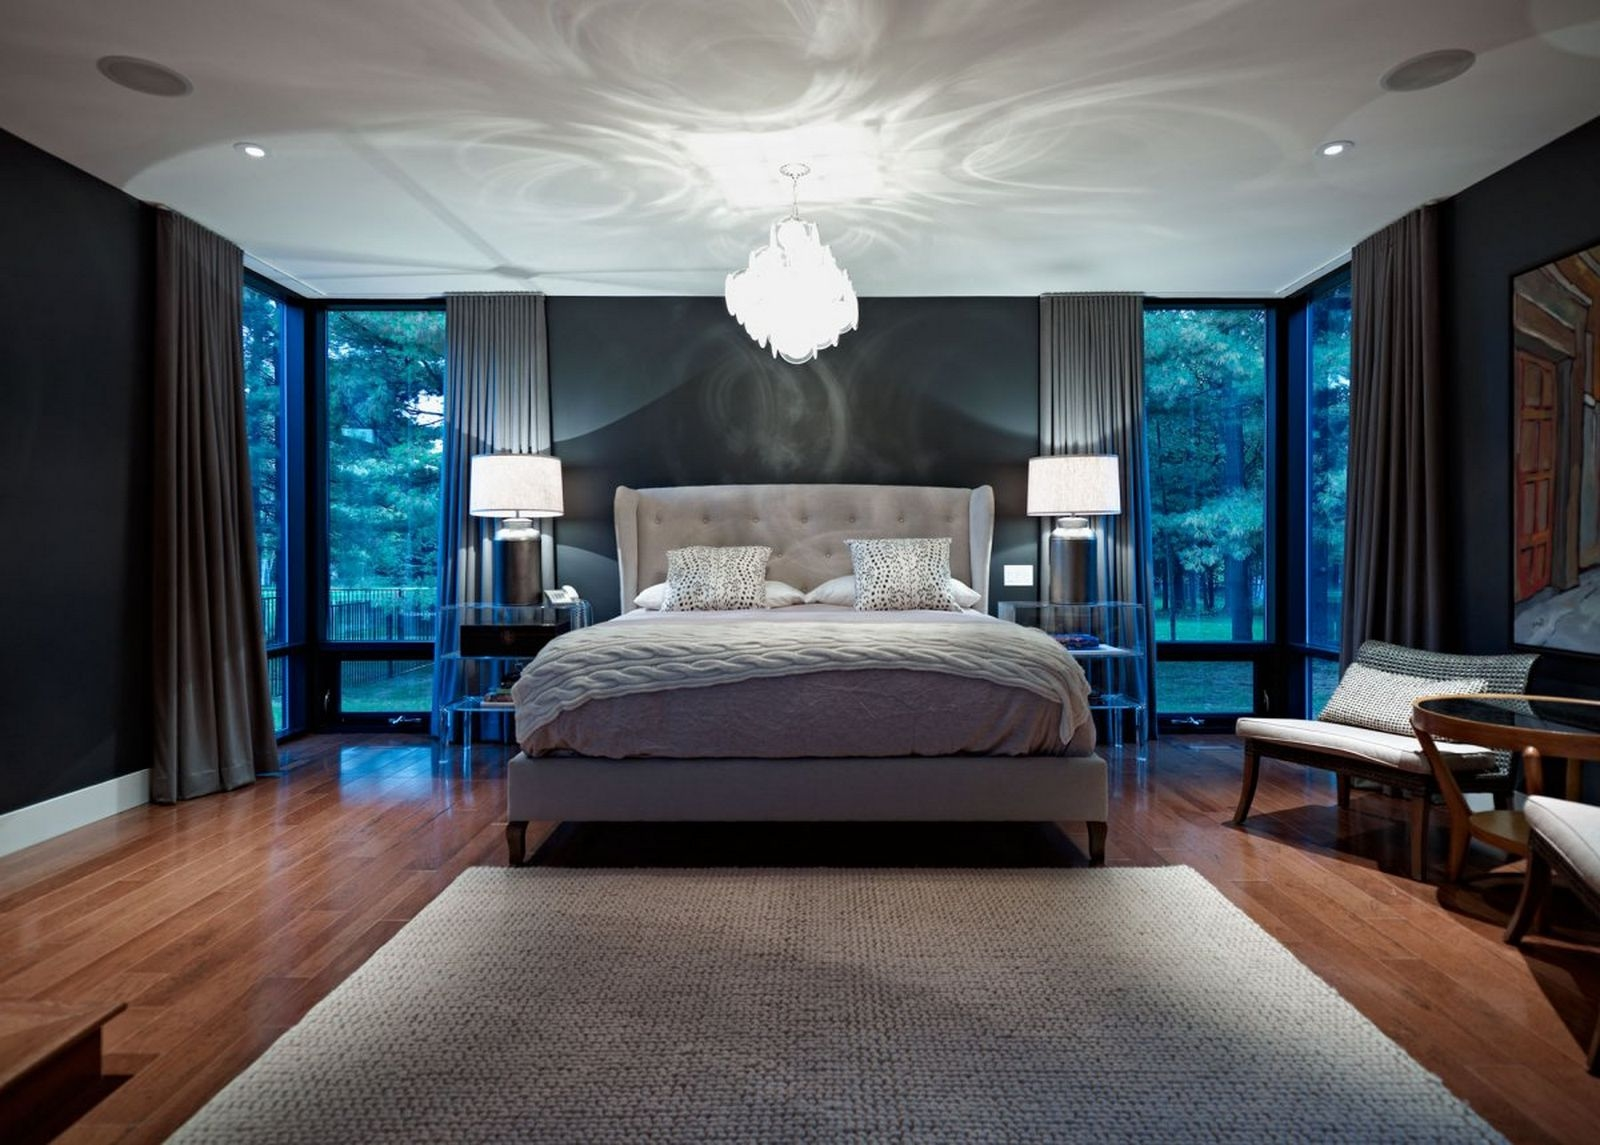 Modern elegant bedroom ideas 22 picture for Elegant master bedroom designs